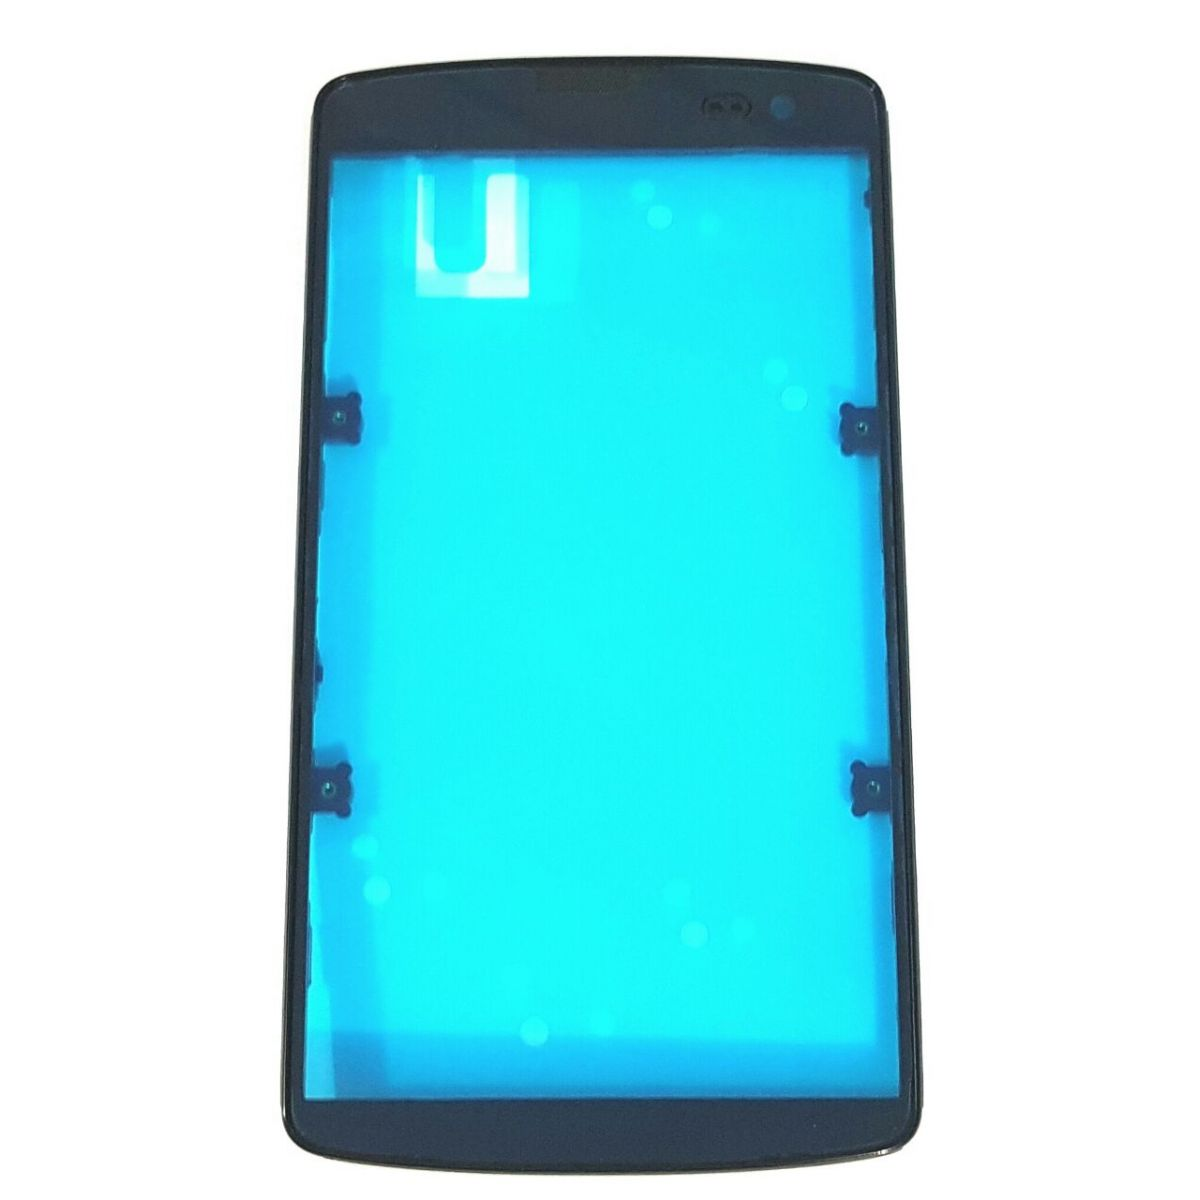 Aro Base do Lcd LG G2 Lite D295, F60, D392